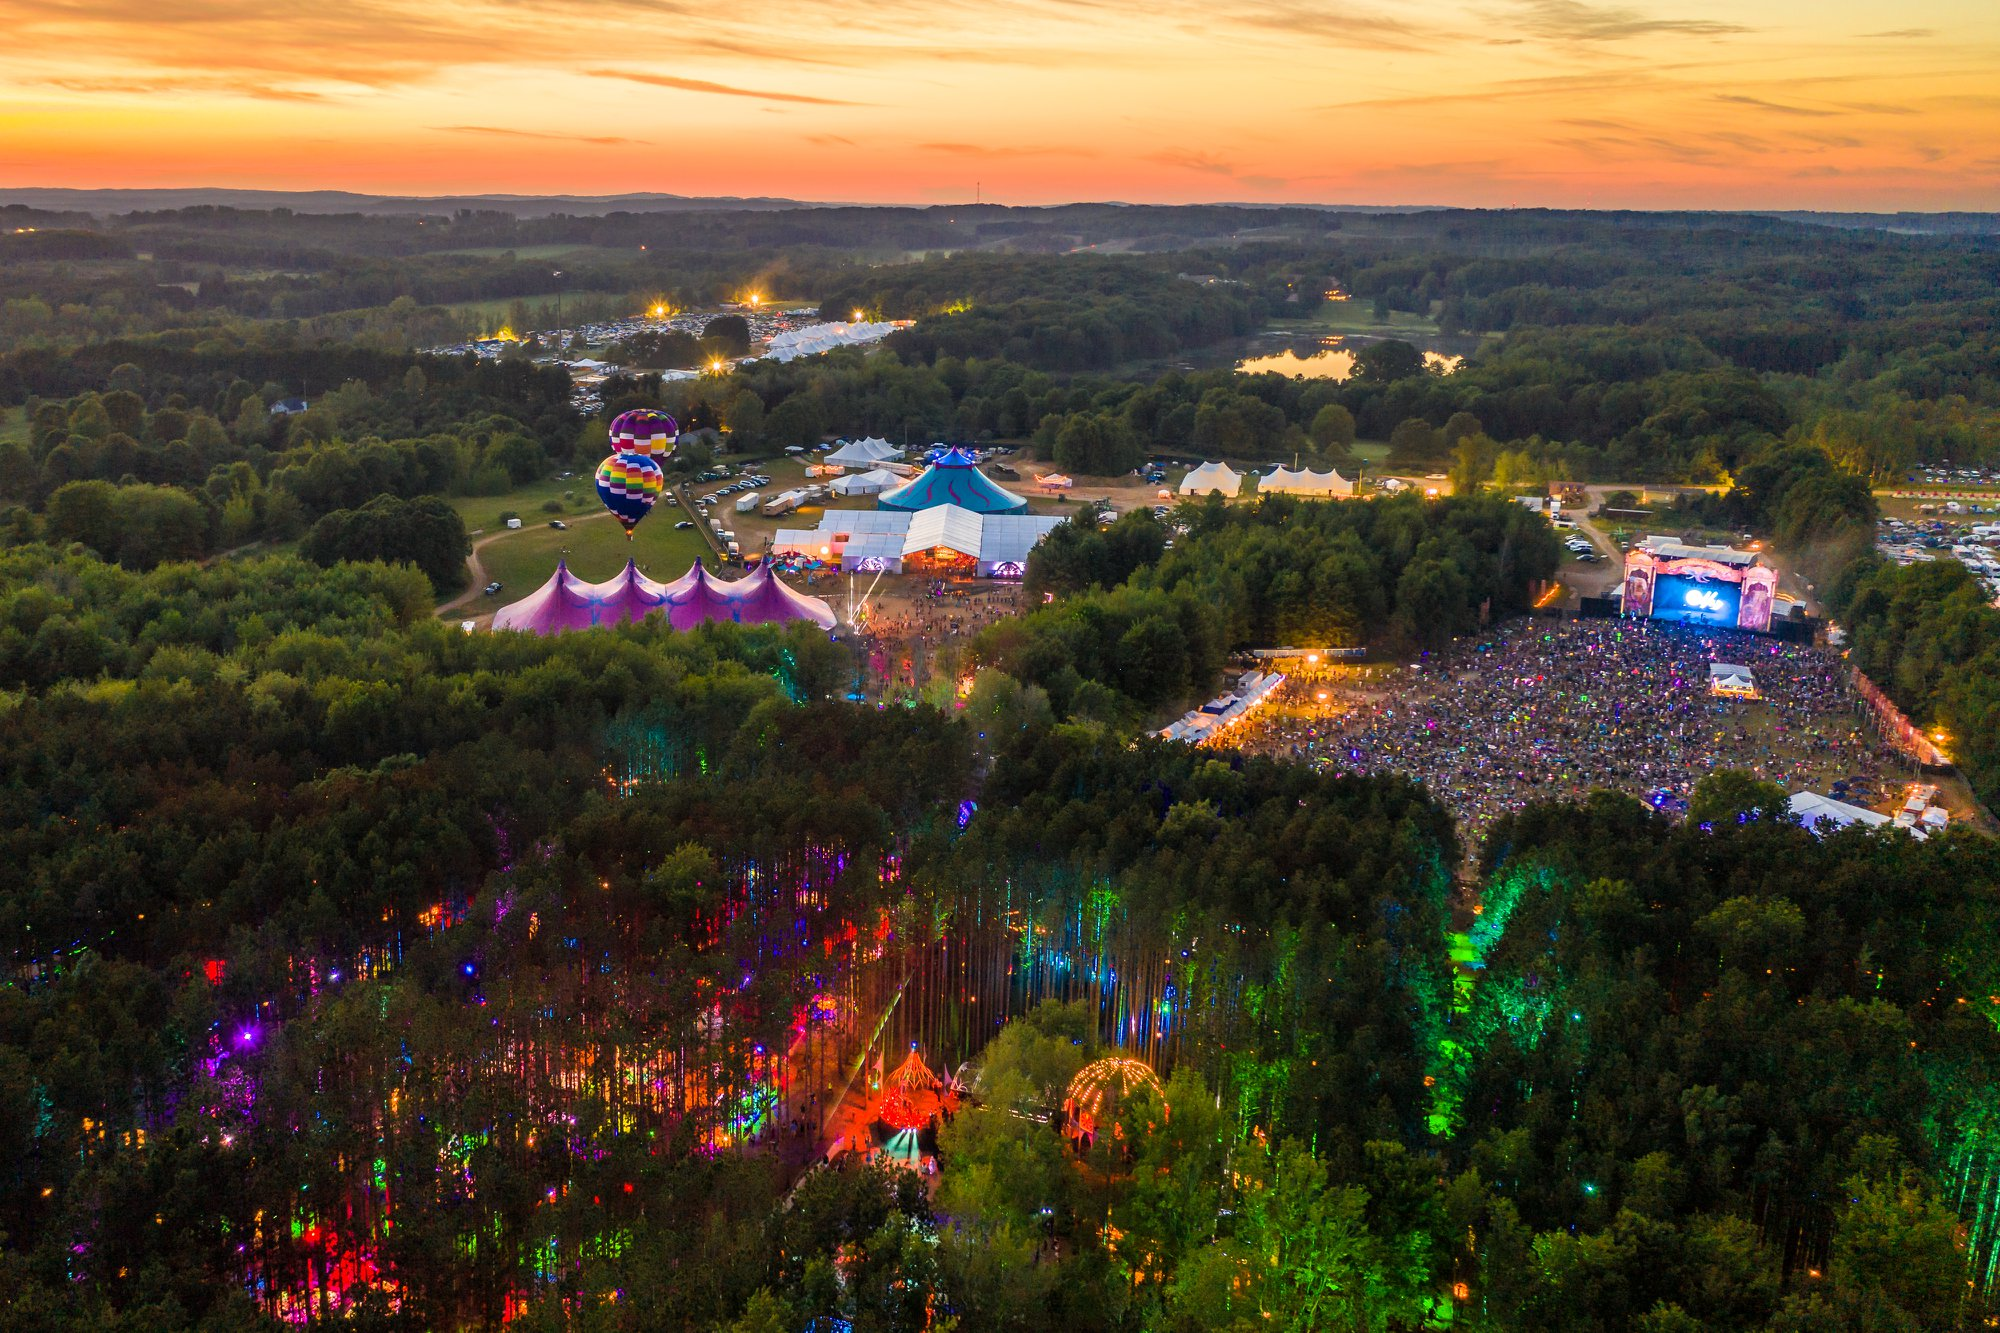 Aerial sunset view of JJ Double Ranch - Sherwood Forest, Tripolee tent, and Sherwood Court stage